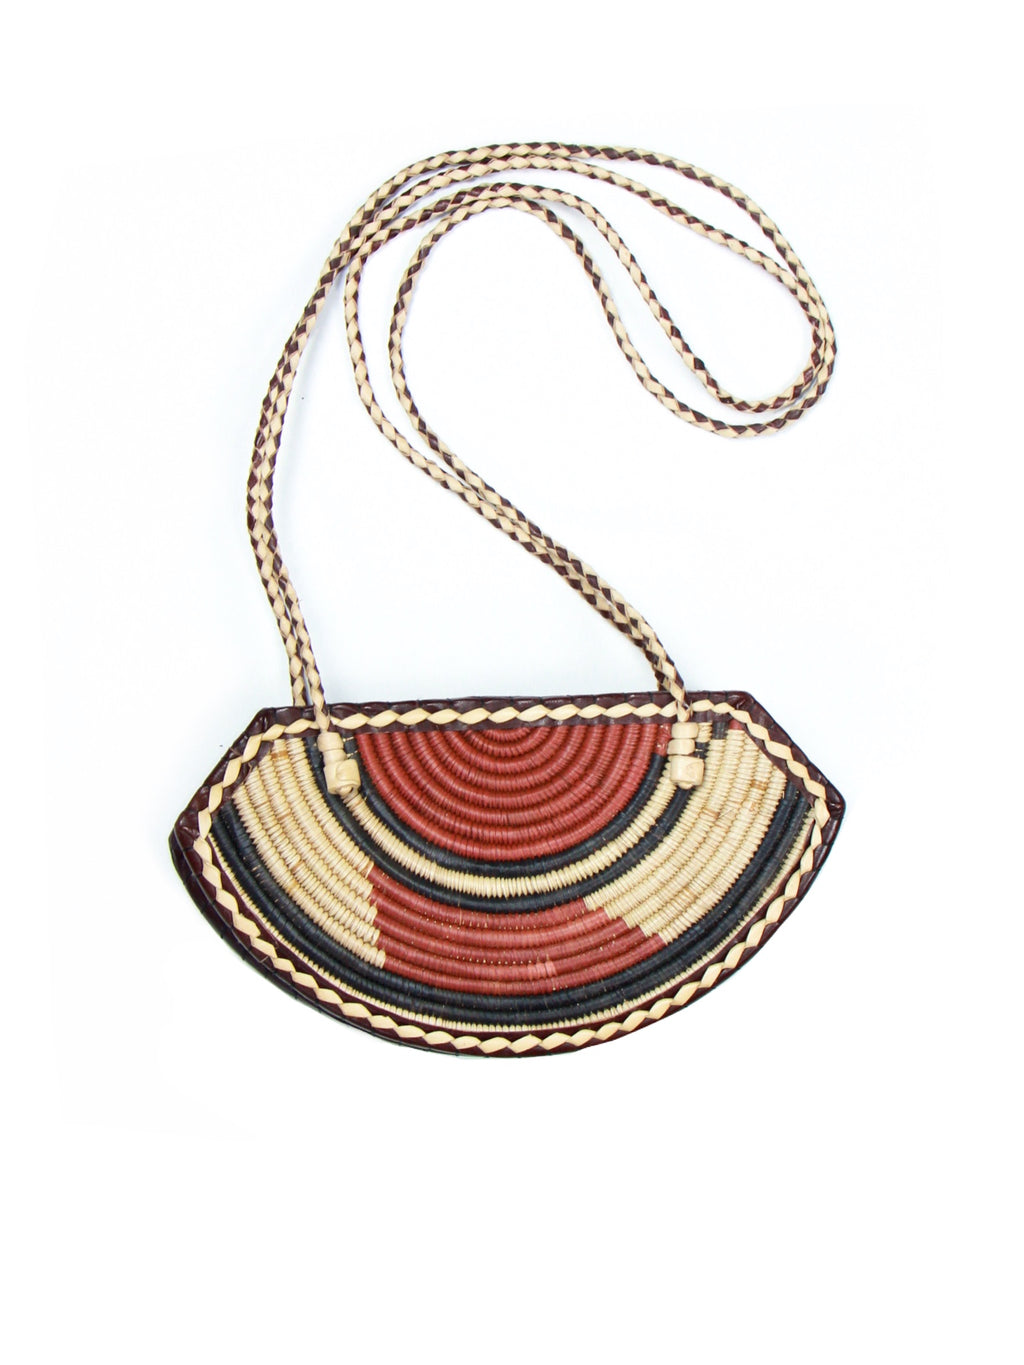 Masai Mara Handbag - Chen Burkett New York